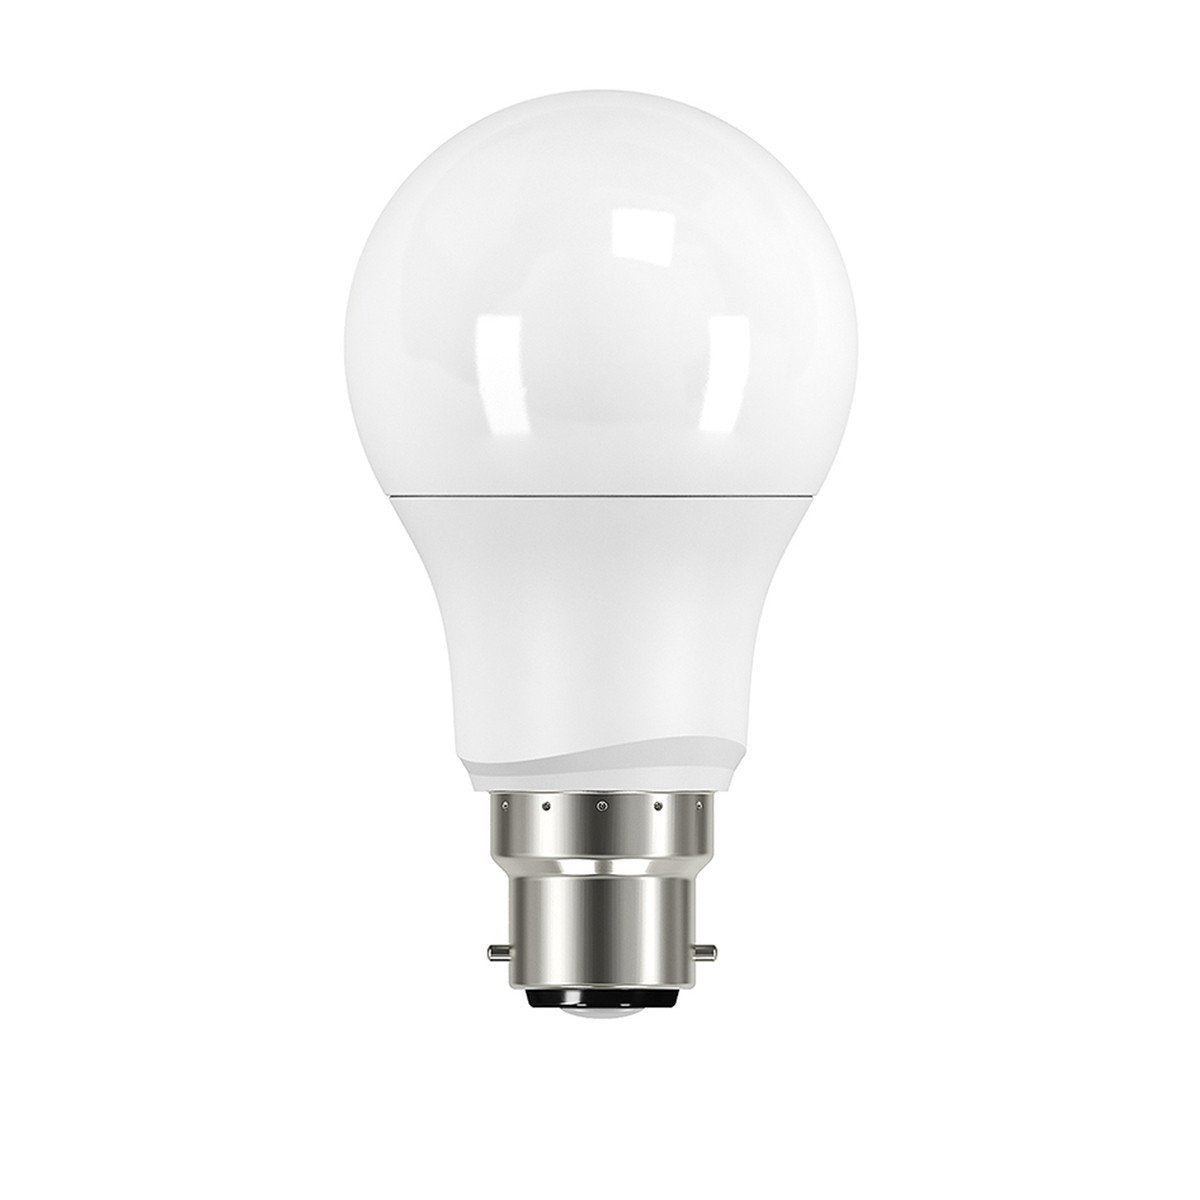 Classic GLS Lamp B22 9.2W LED - London Lighting - 1